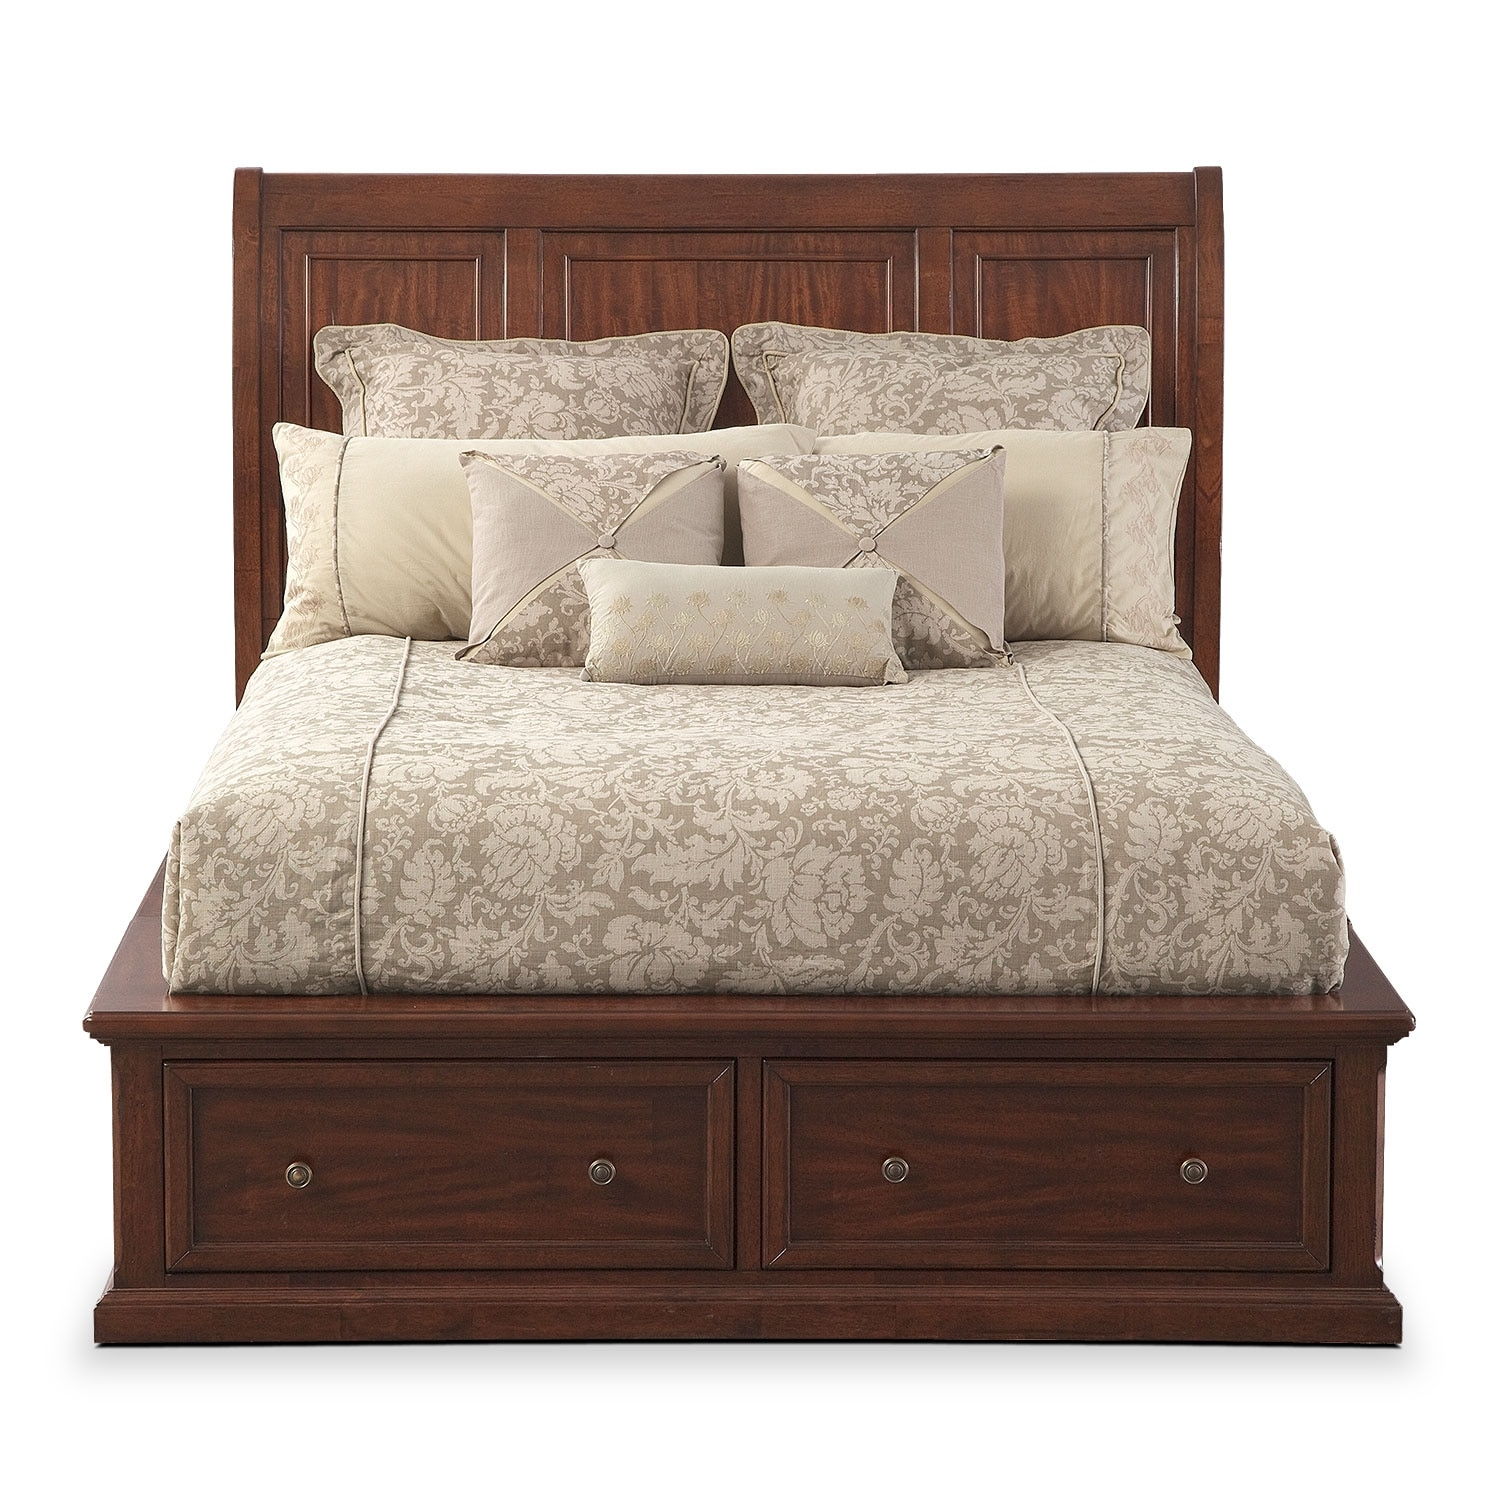 American Signature Furniture Com: Hanover Queen Storage Bed - Cherry